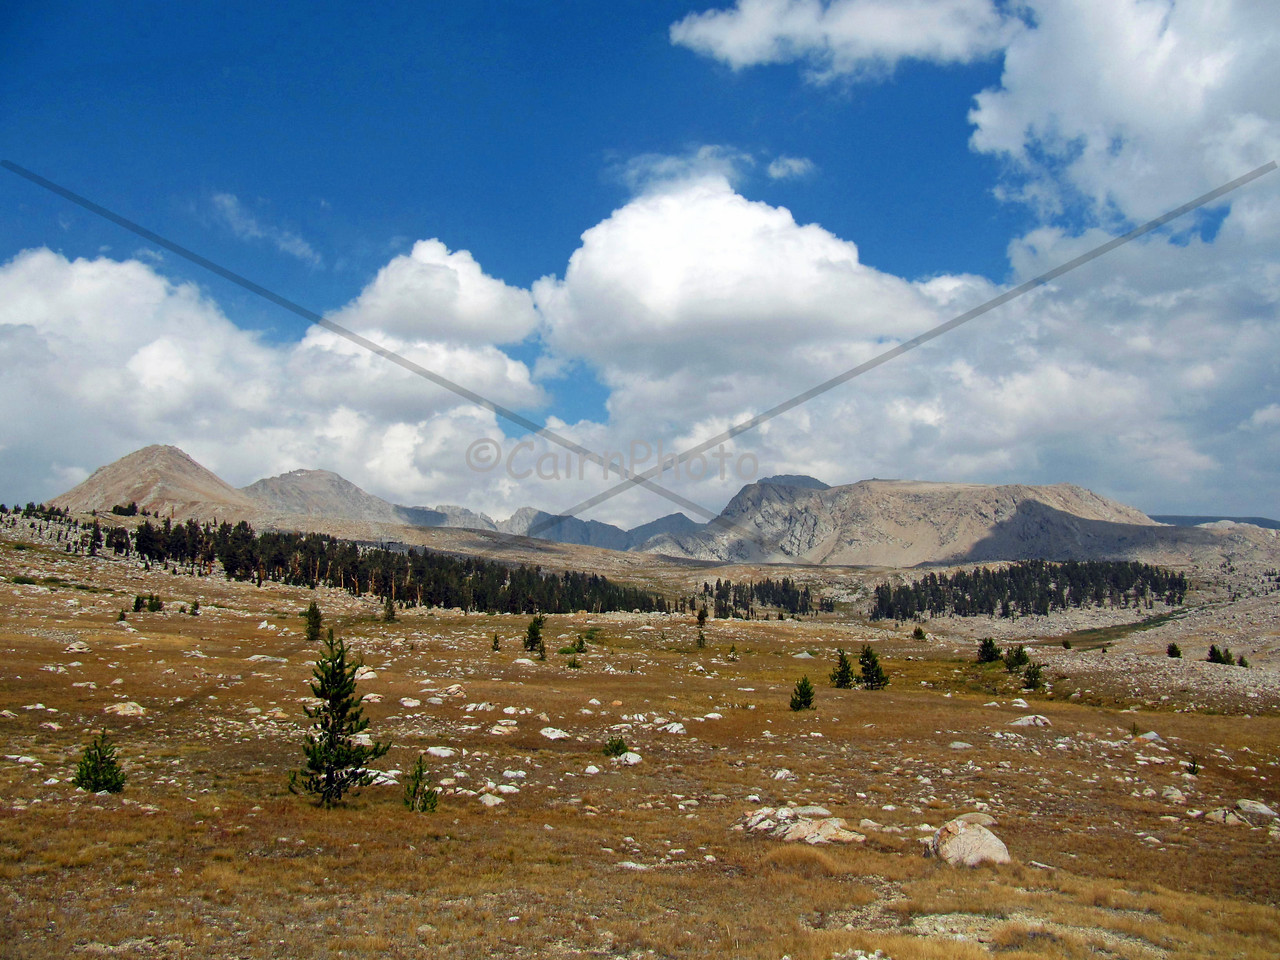 After crossing Forester Pass and heading south, turn around and you'll see the pass itself and the Great Western Divide.